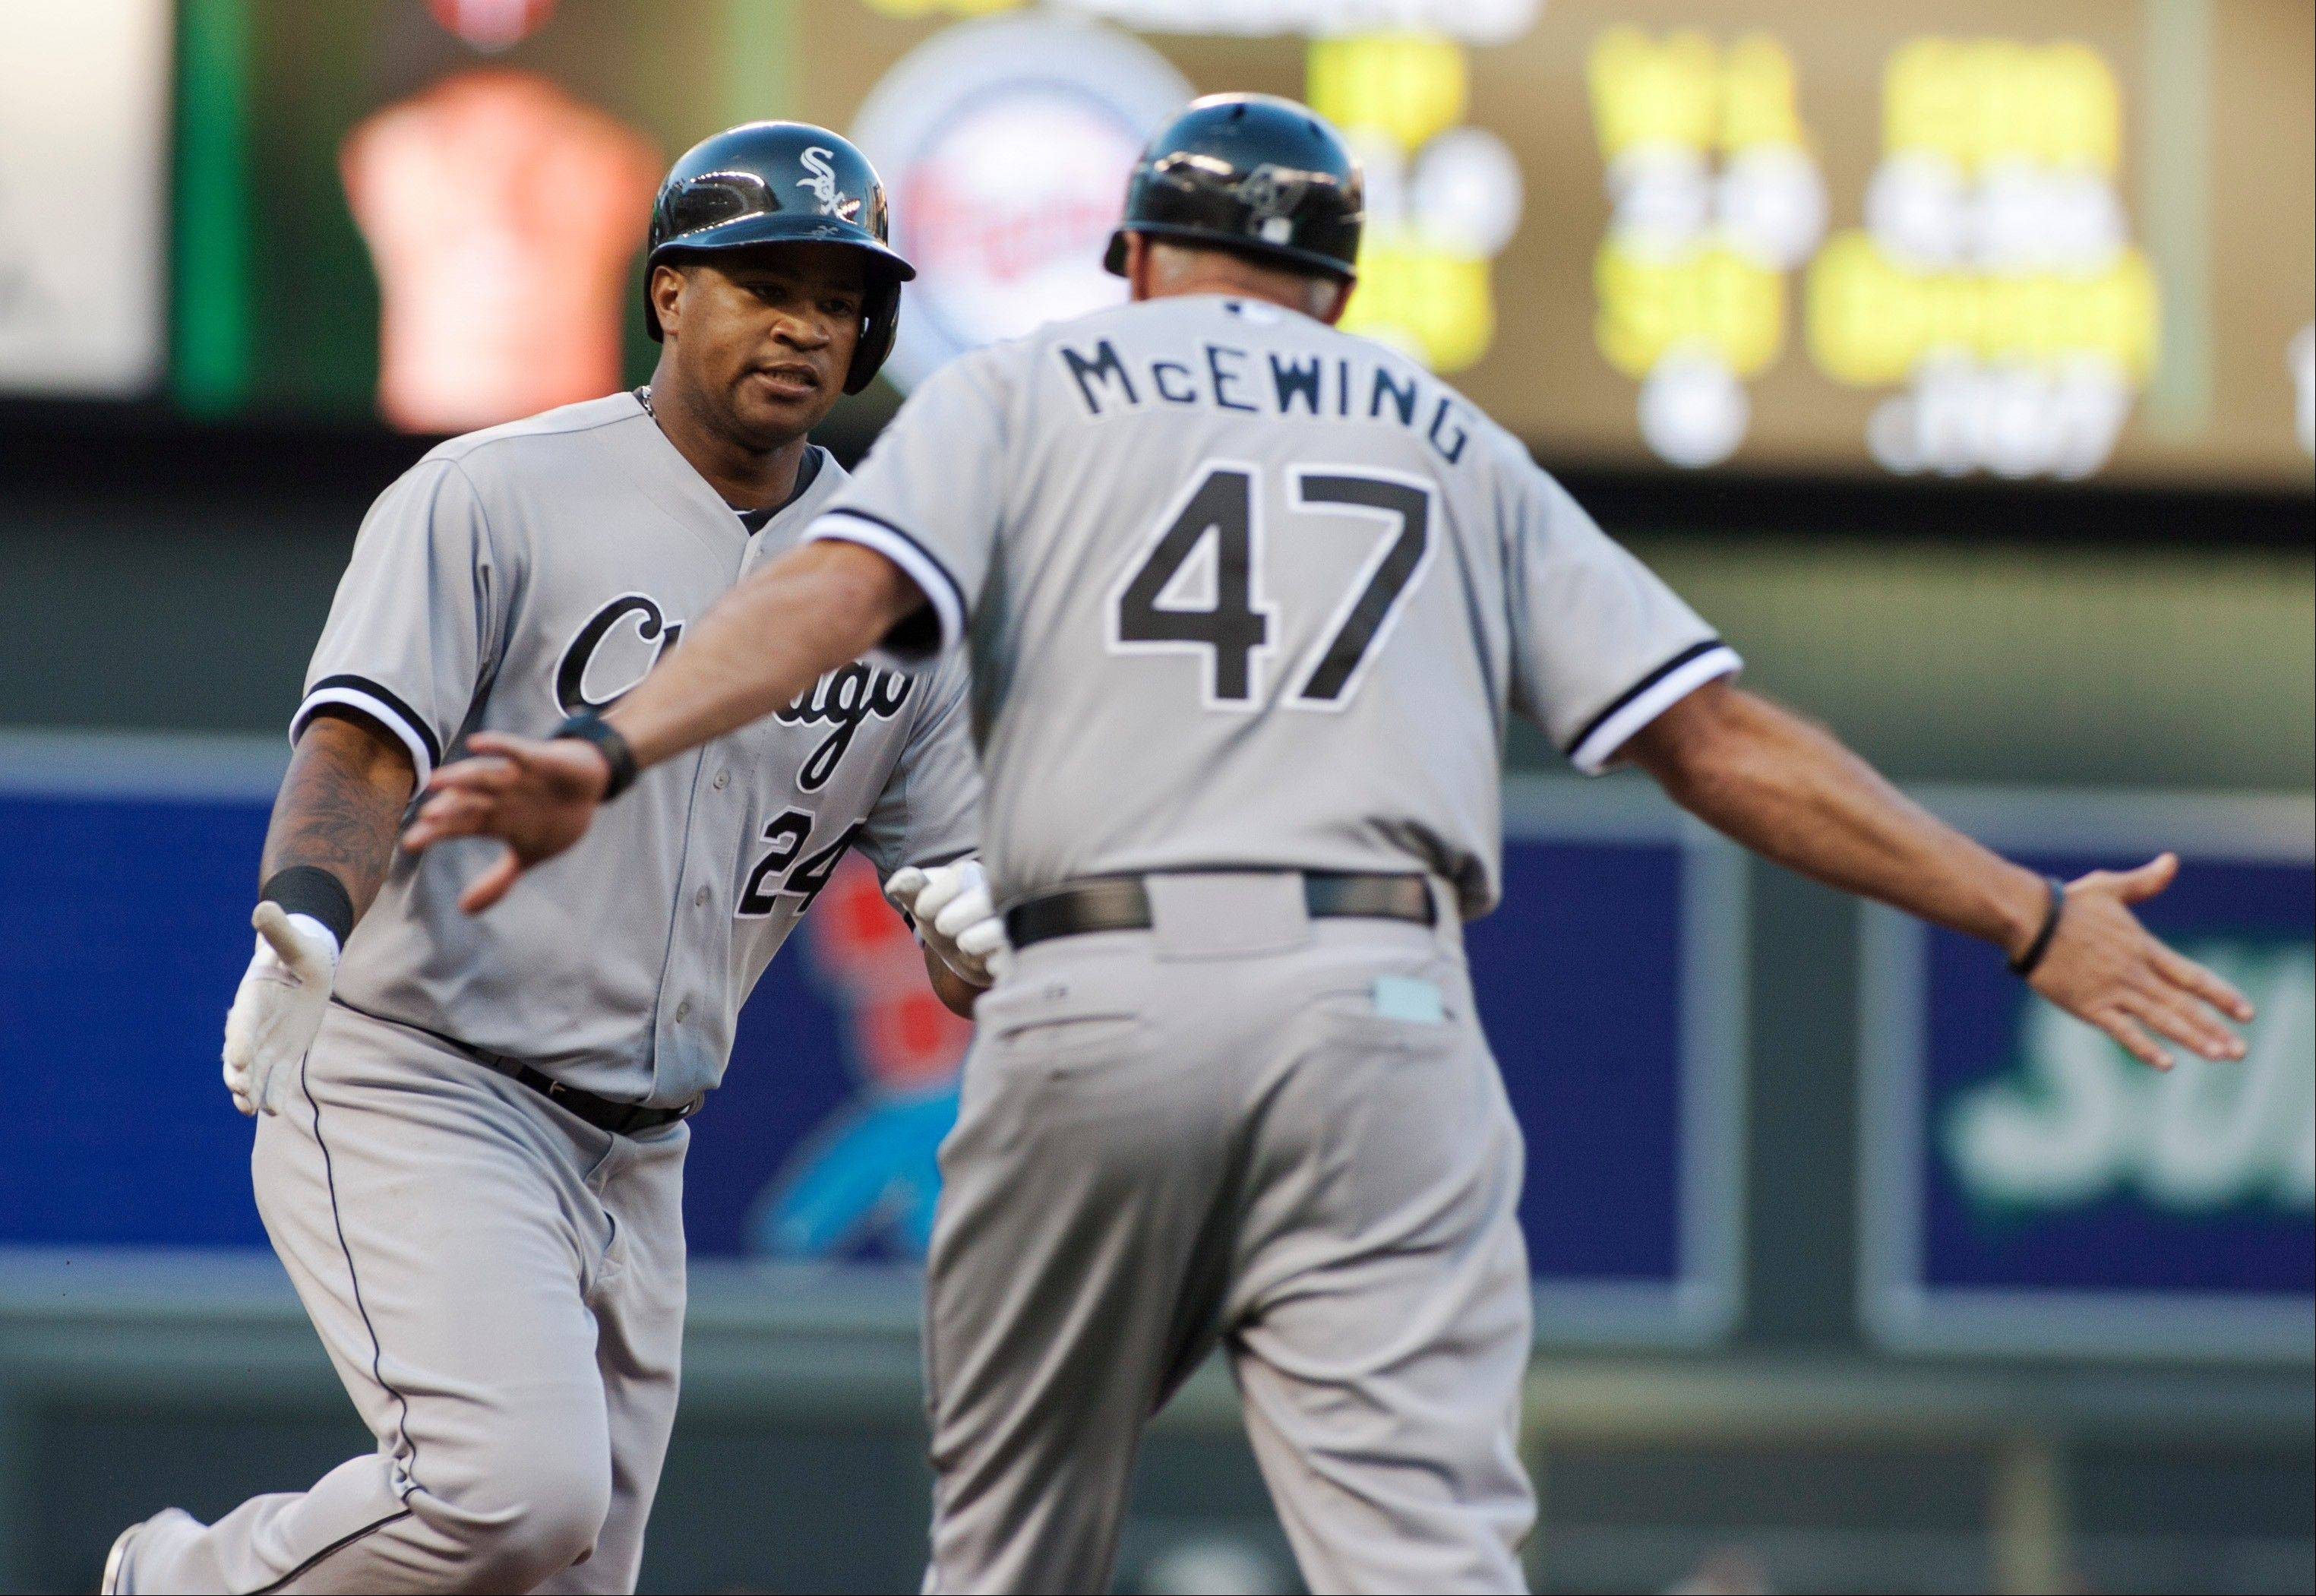 Chicago White Sox�s Dayan Viciedo, left, is congratulated by third base coach Joe McEwing (47) after hitting a three-run home run during the fourth inning of an baseball game Saturday against the Minnesota Twins in Minneapolis.